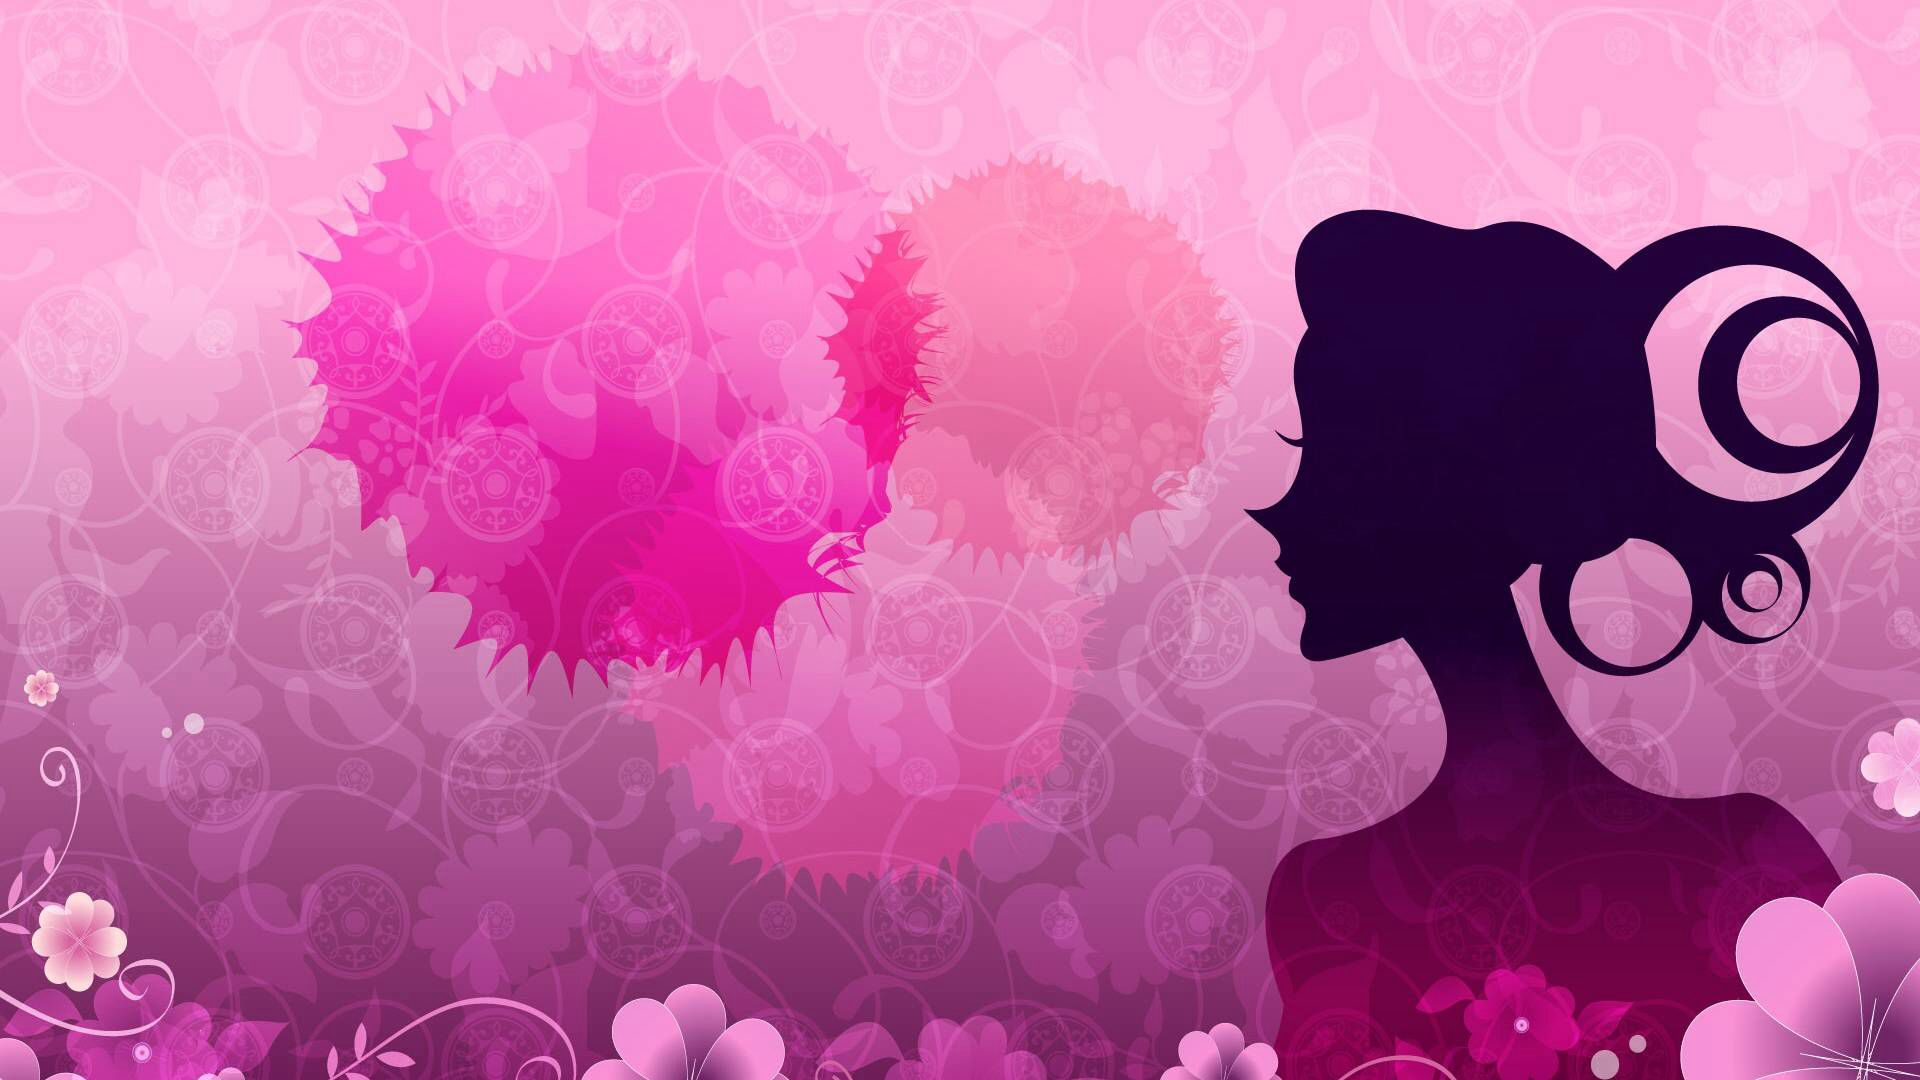 Download Girly Wallpapers App at http://bit.ly/1NmVGR6